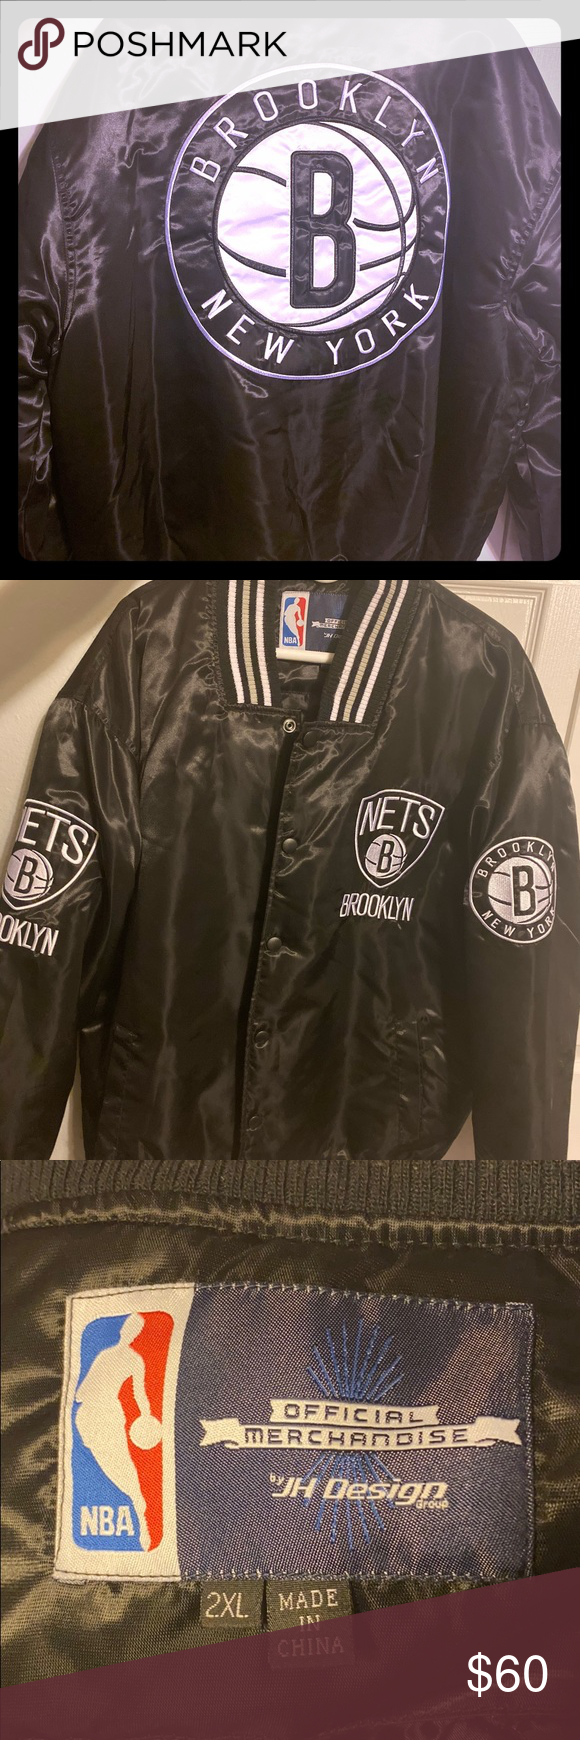 Brooklyn Nets bomber/varsity Jacket Brand new! Black with white logos and accents. 2xL. Make me an offer NBA Jackets & Coats Bomber & Varsity #varsityjacketoutfit